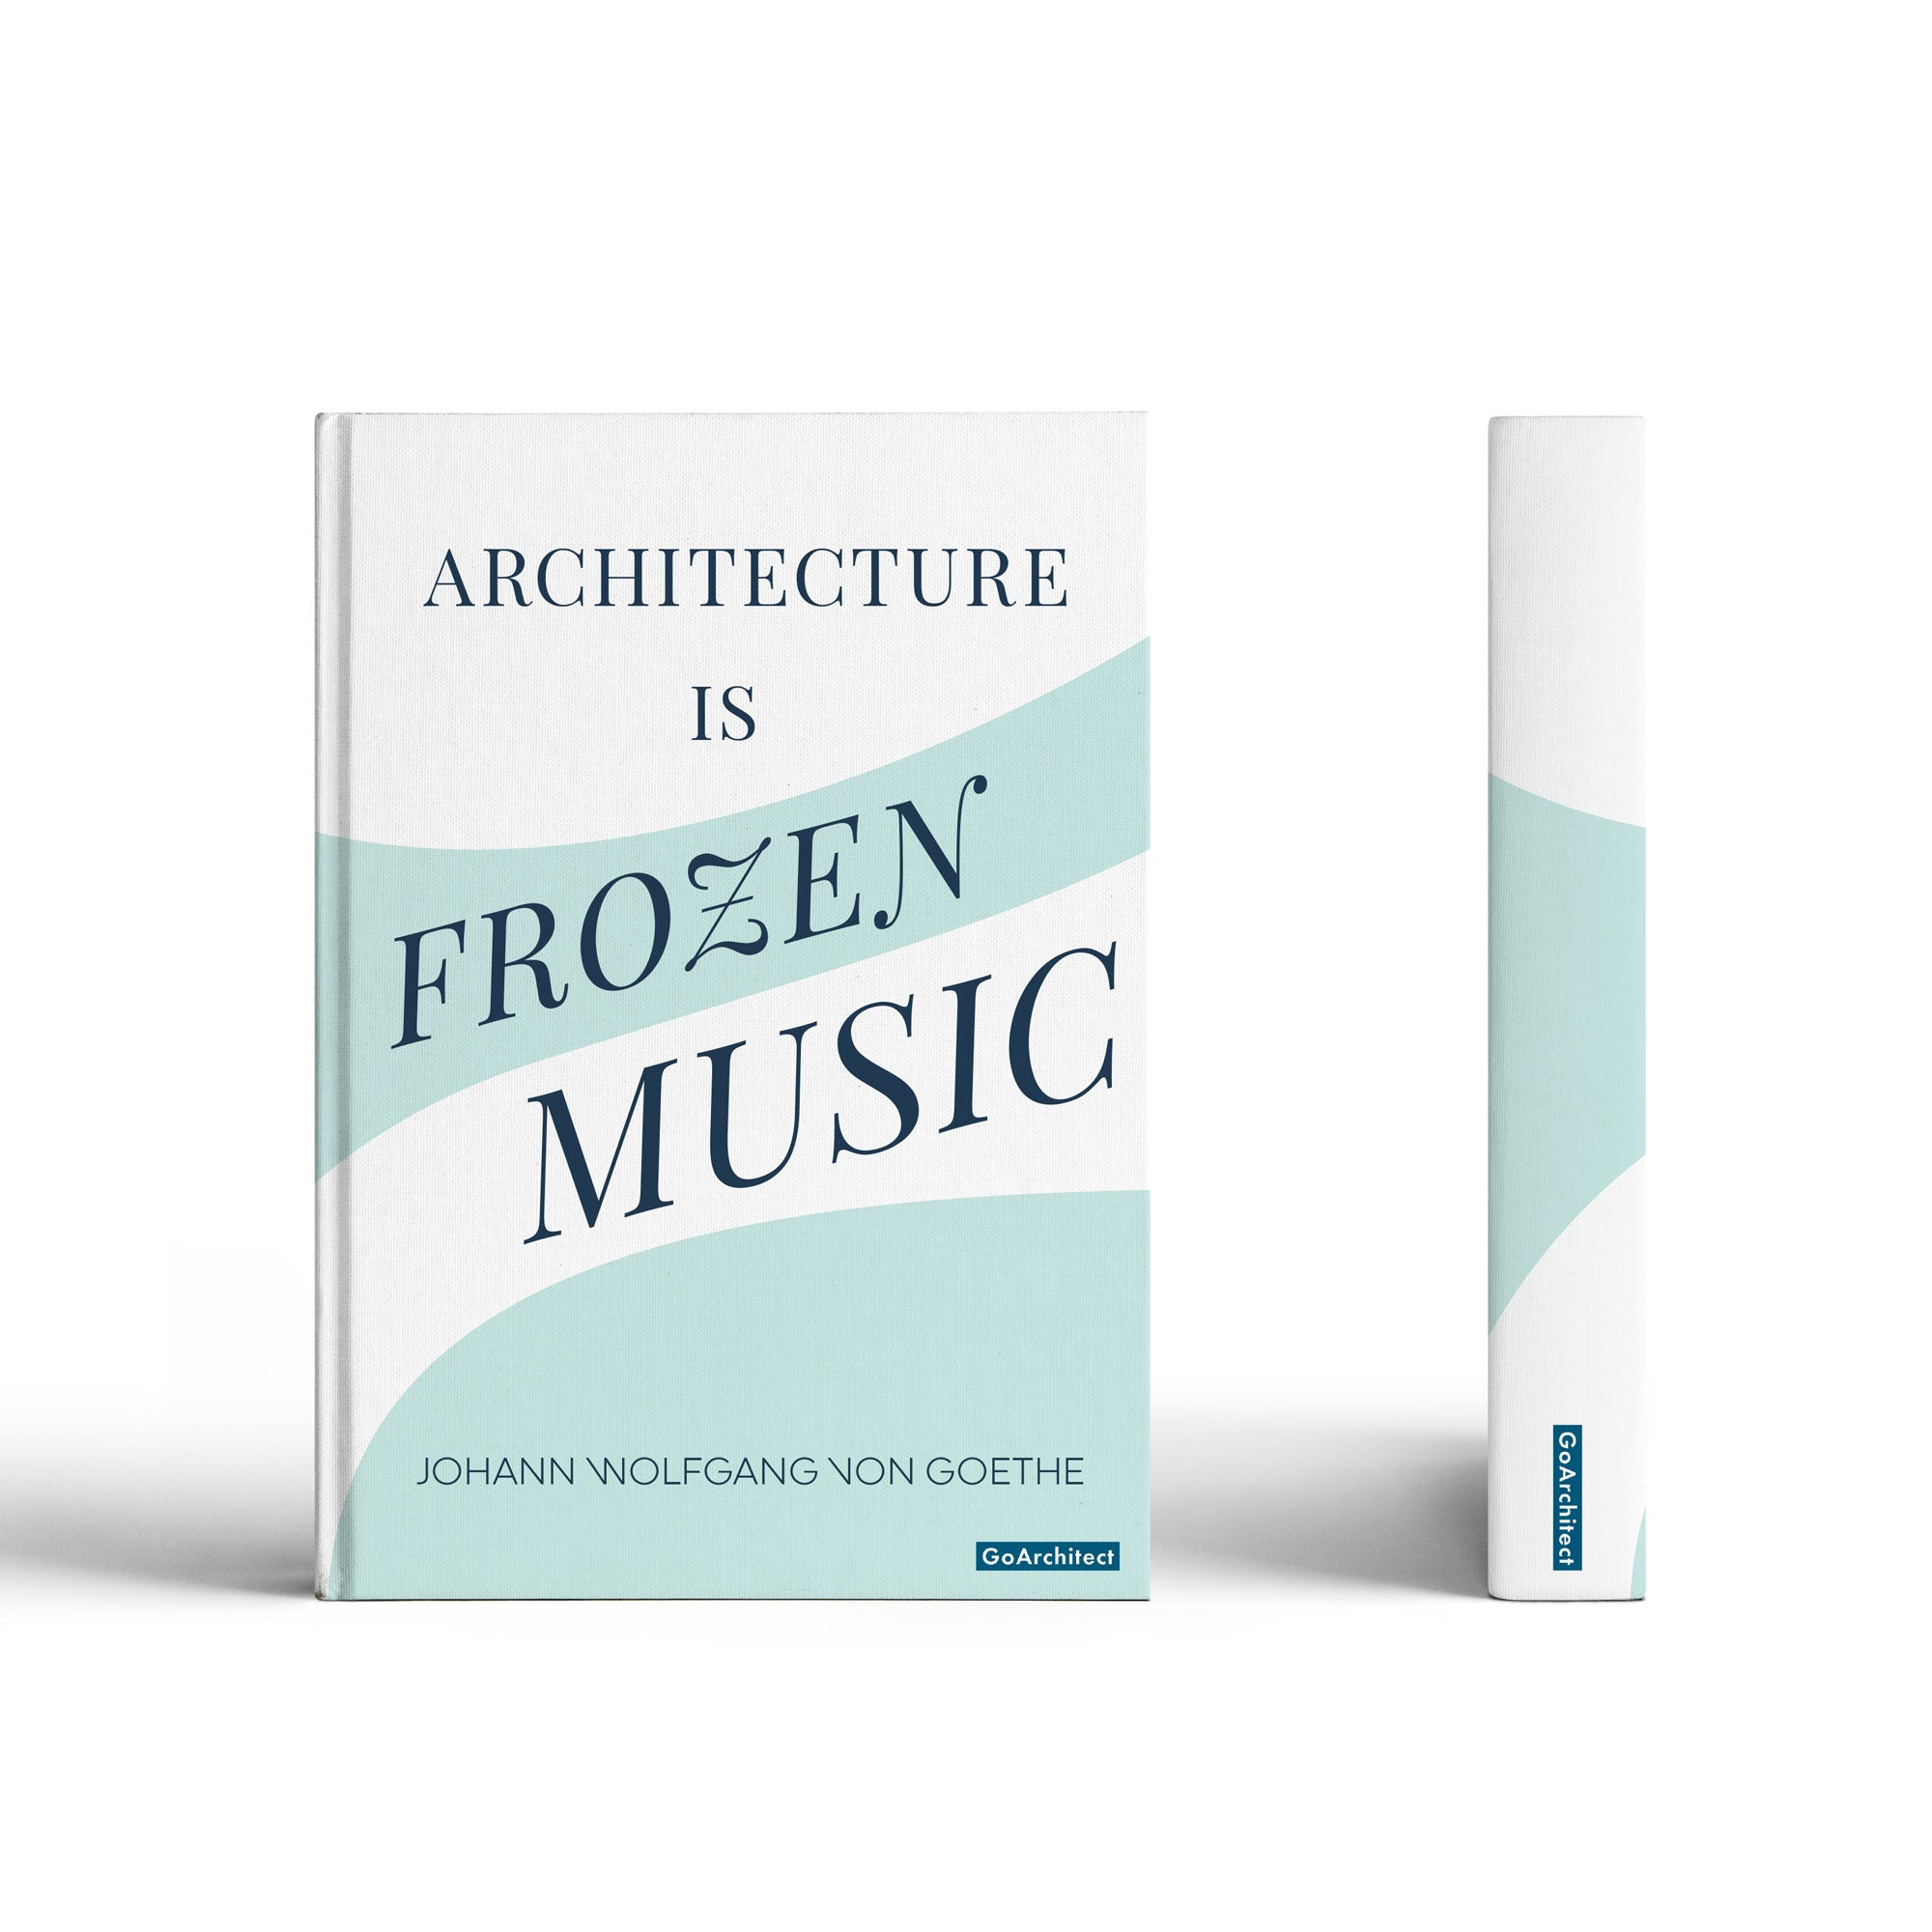 Architecture is Frozen Music notebook: Inspired by Johann Wolfgang von Goethe